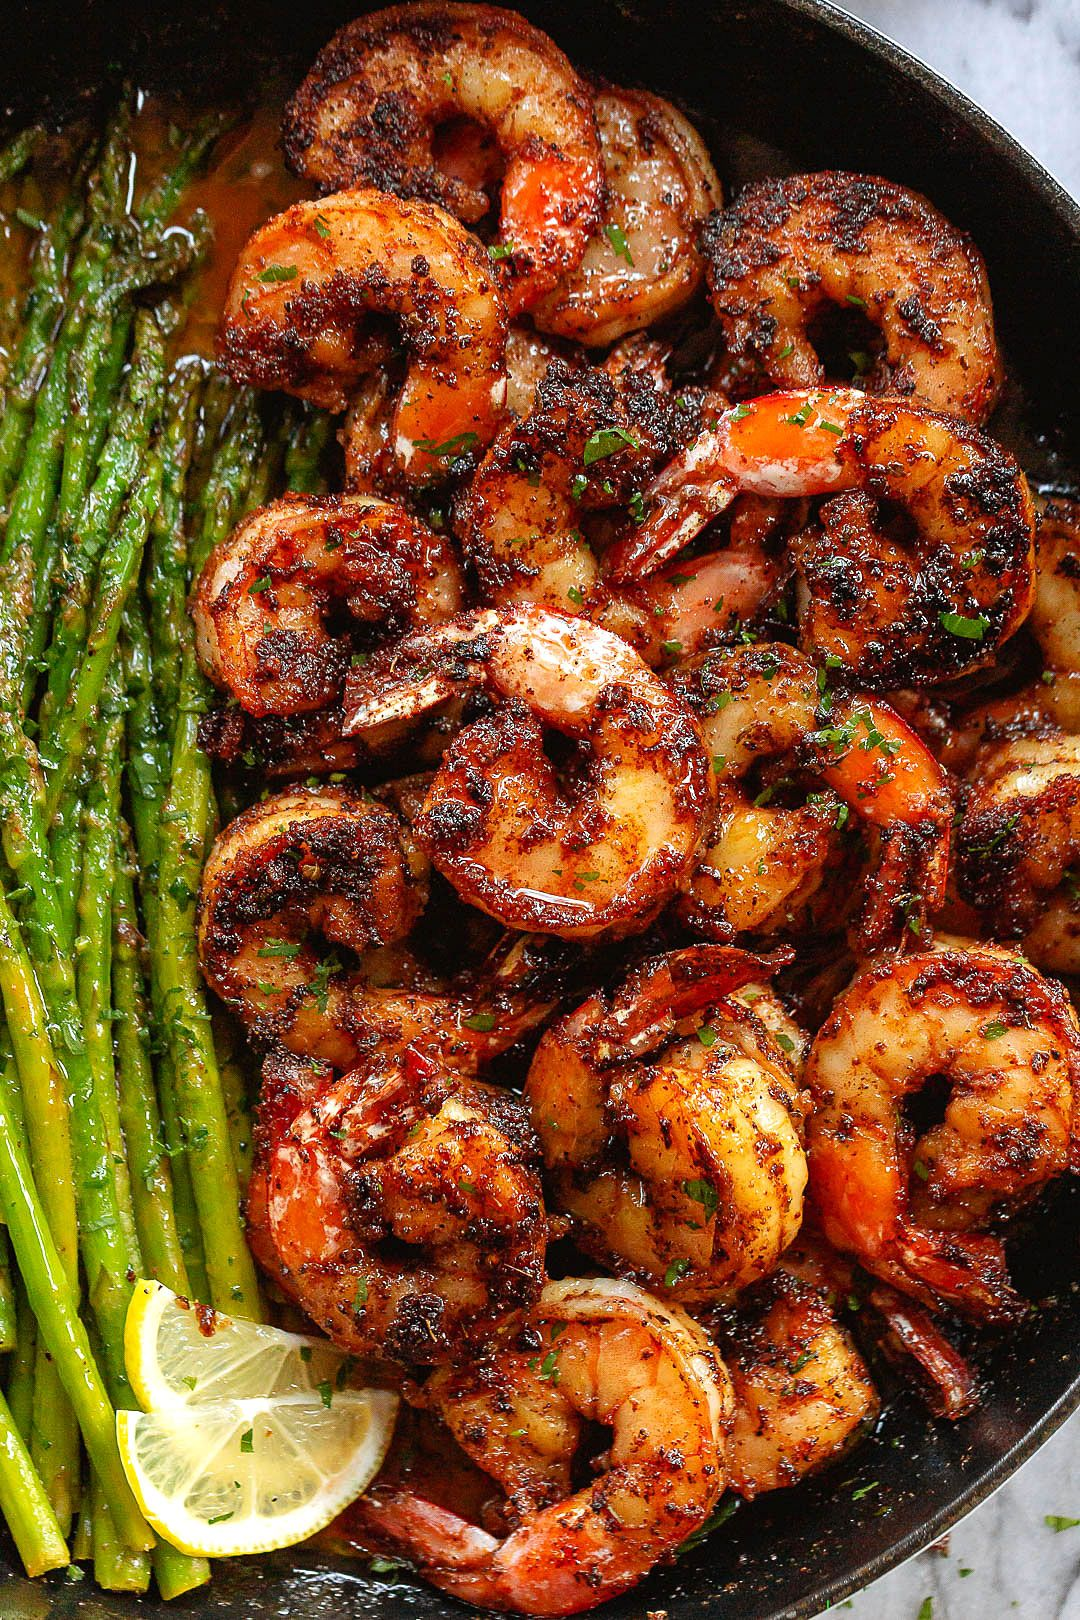 Blackened Shrimp and Asparagus Skillet (20 Minutes)